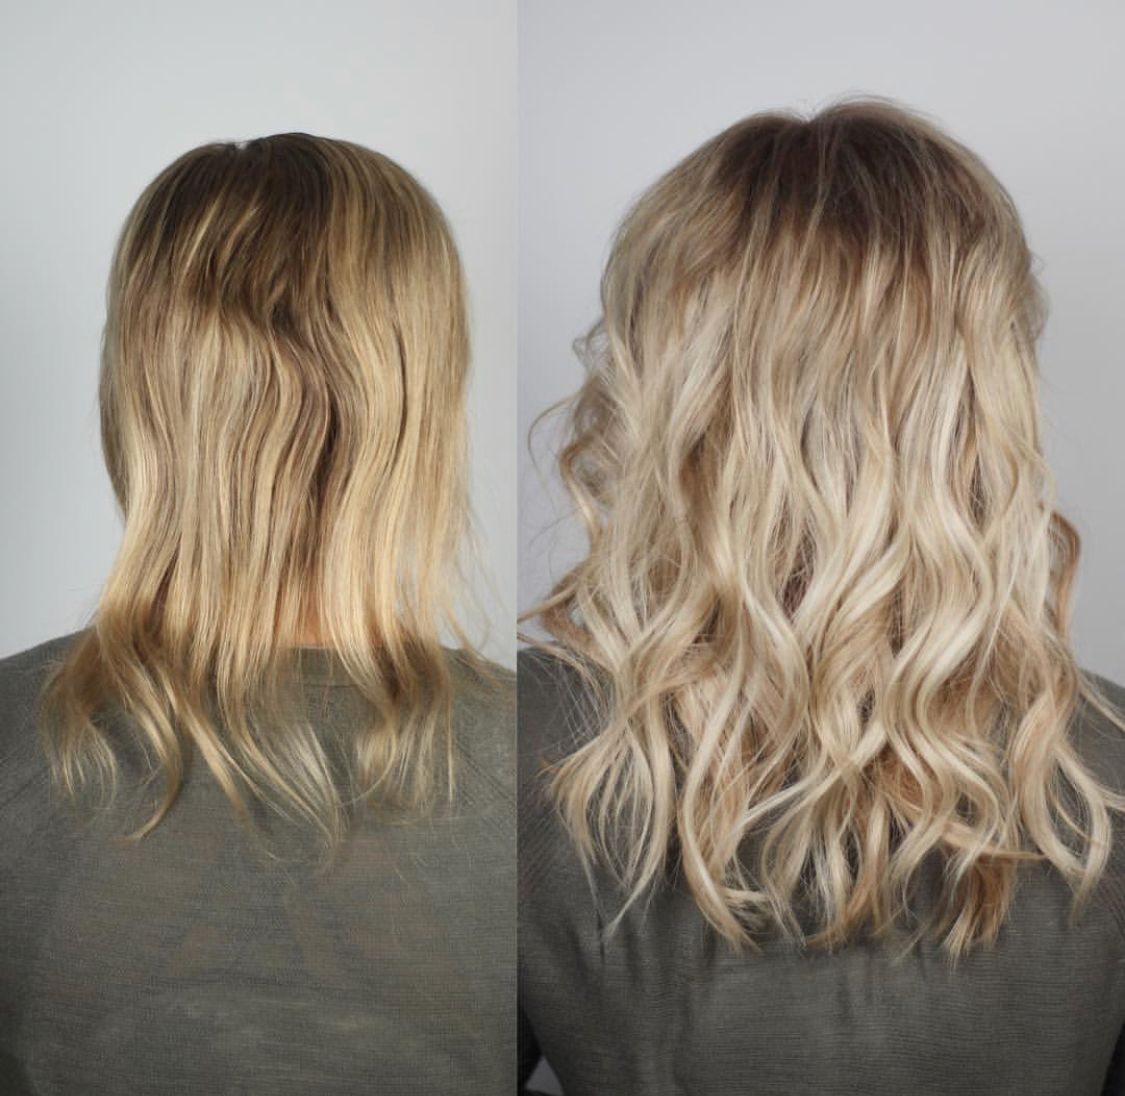 Extensions for volume! NBR Glue in hair extensions, Easy